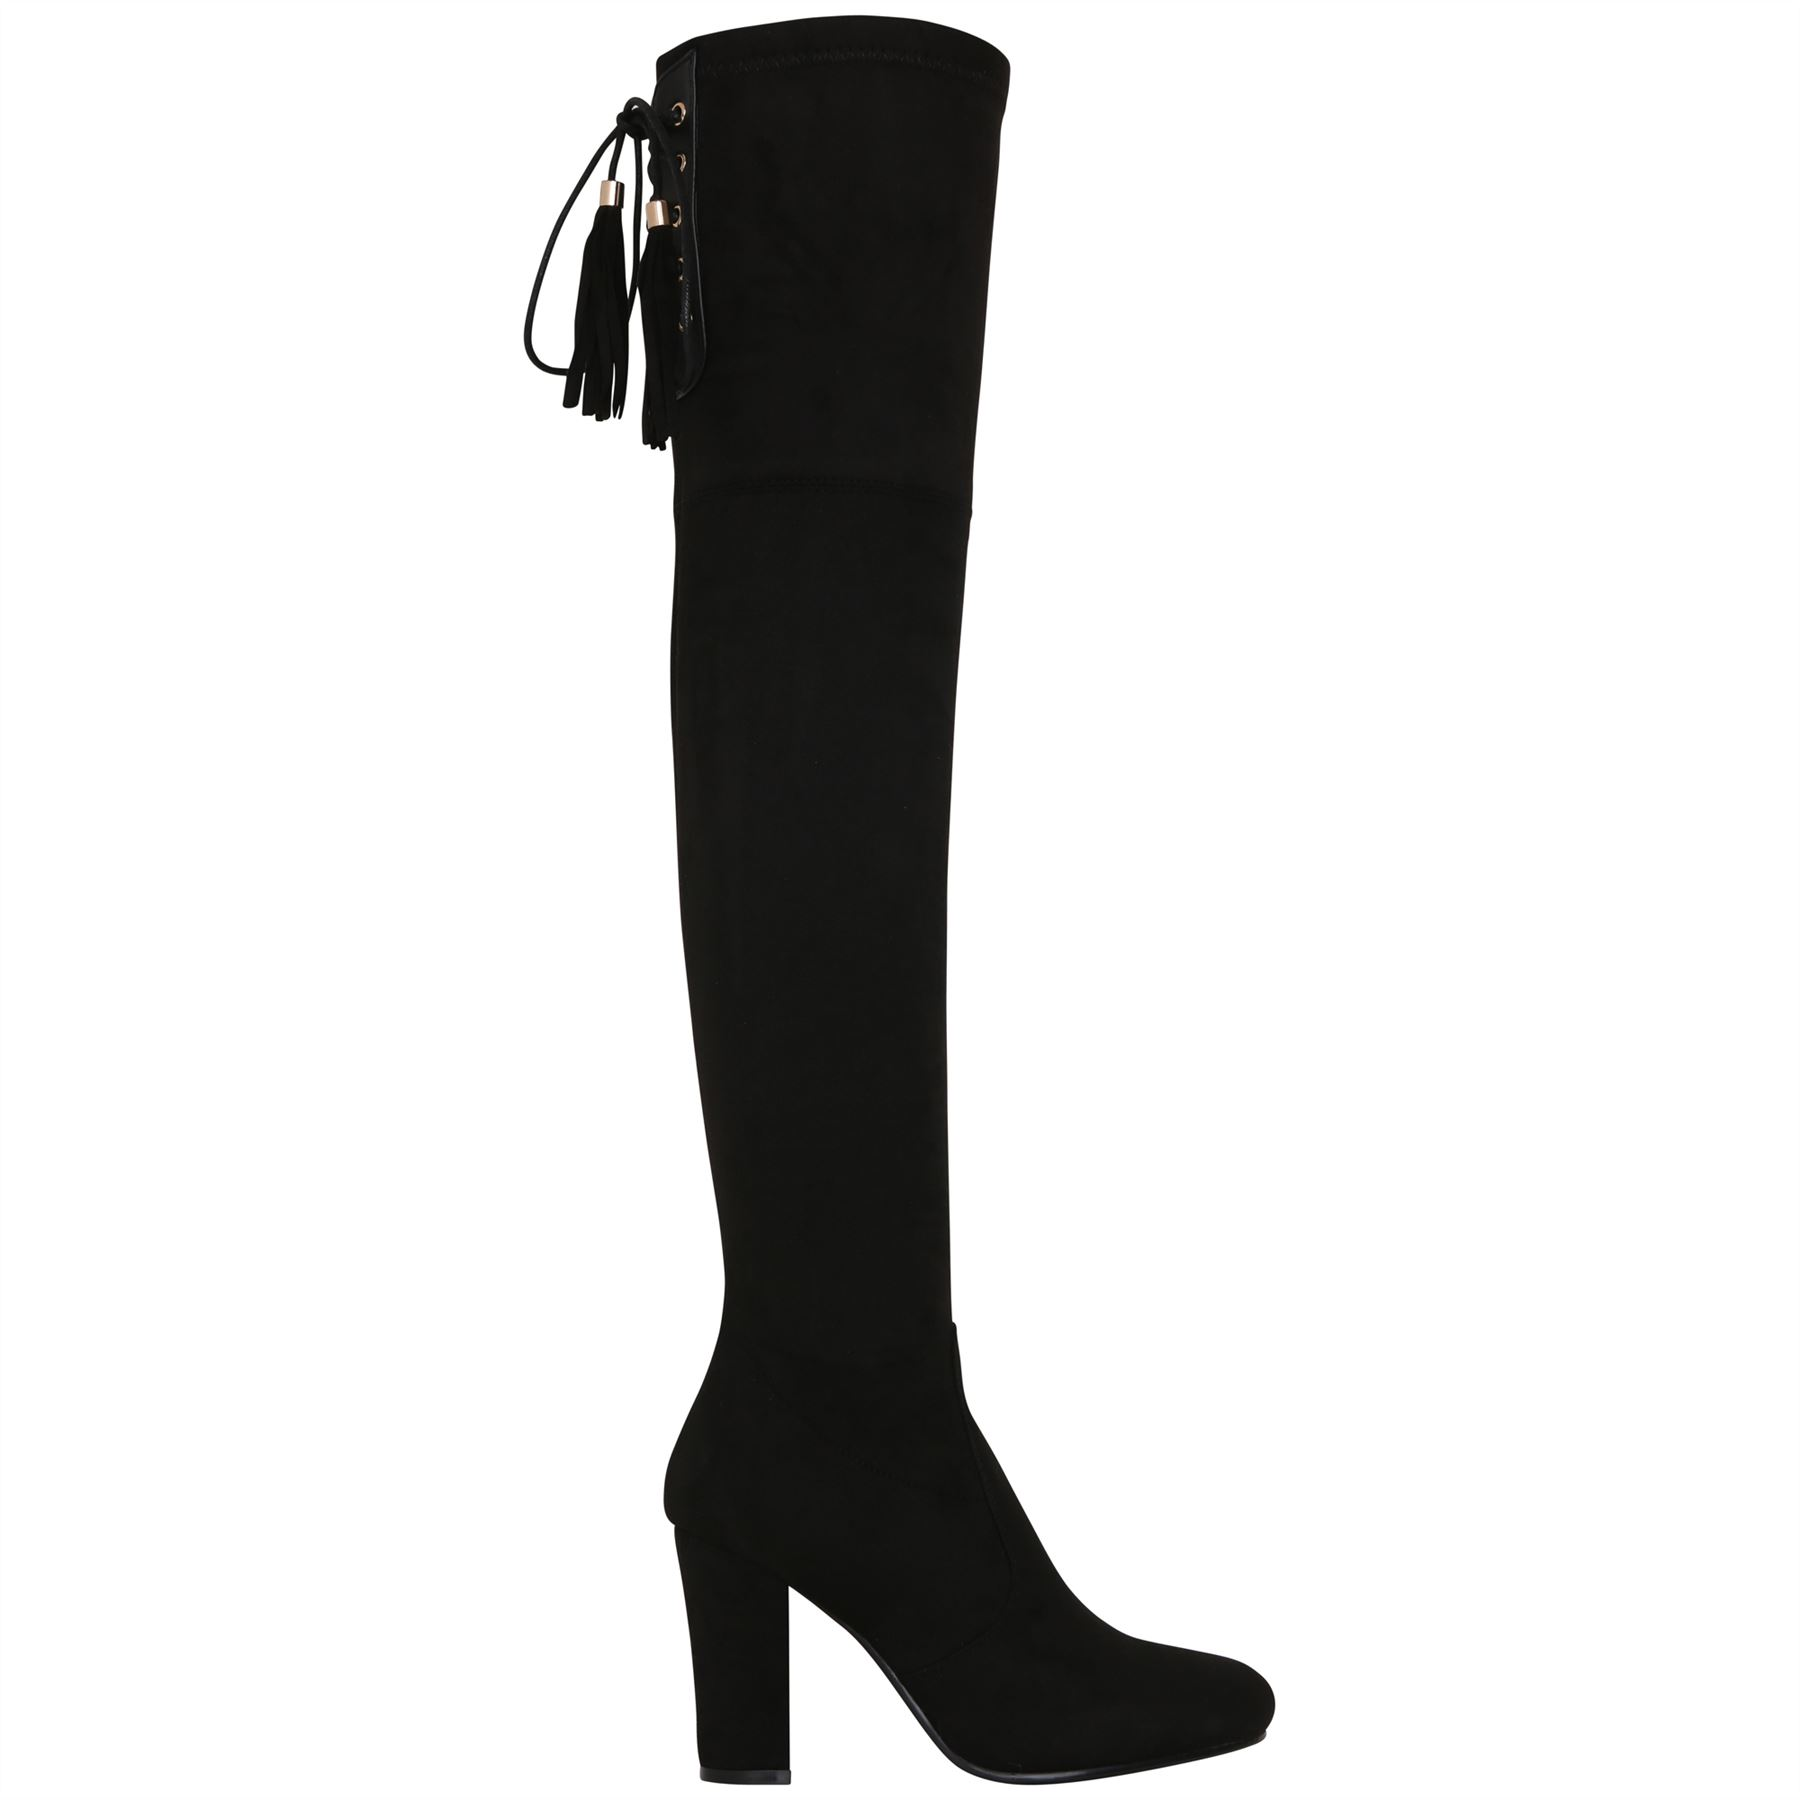 Womens-Over-Knee-High-Boots-Ladies-Low-Block-Heel-Riding-Stretch-Winter-Shoes miniatura 7